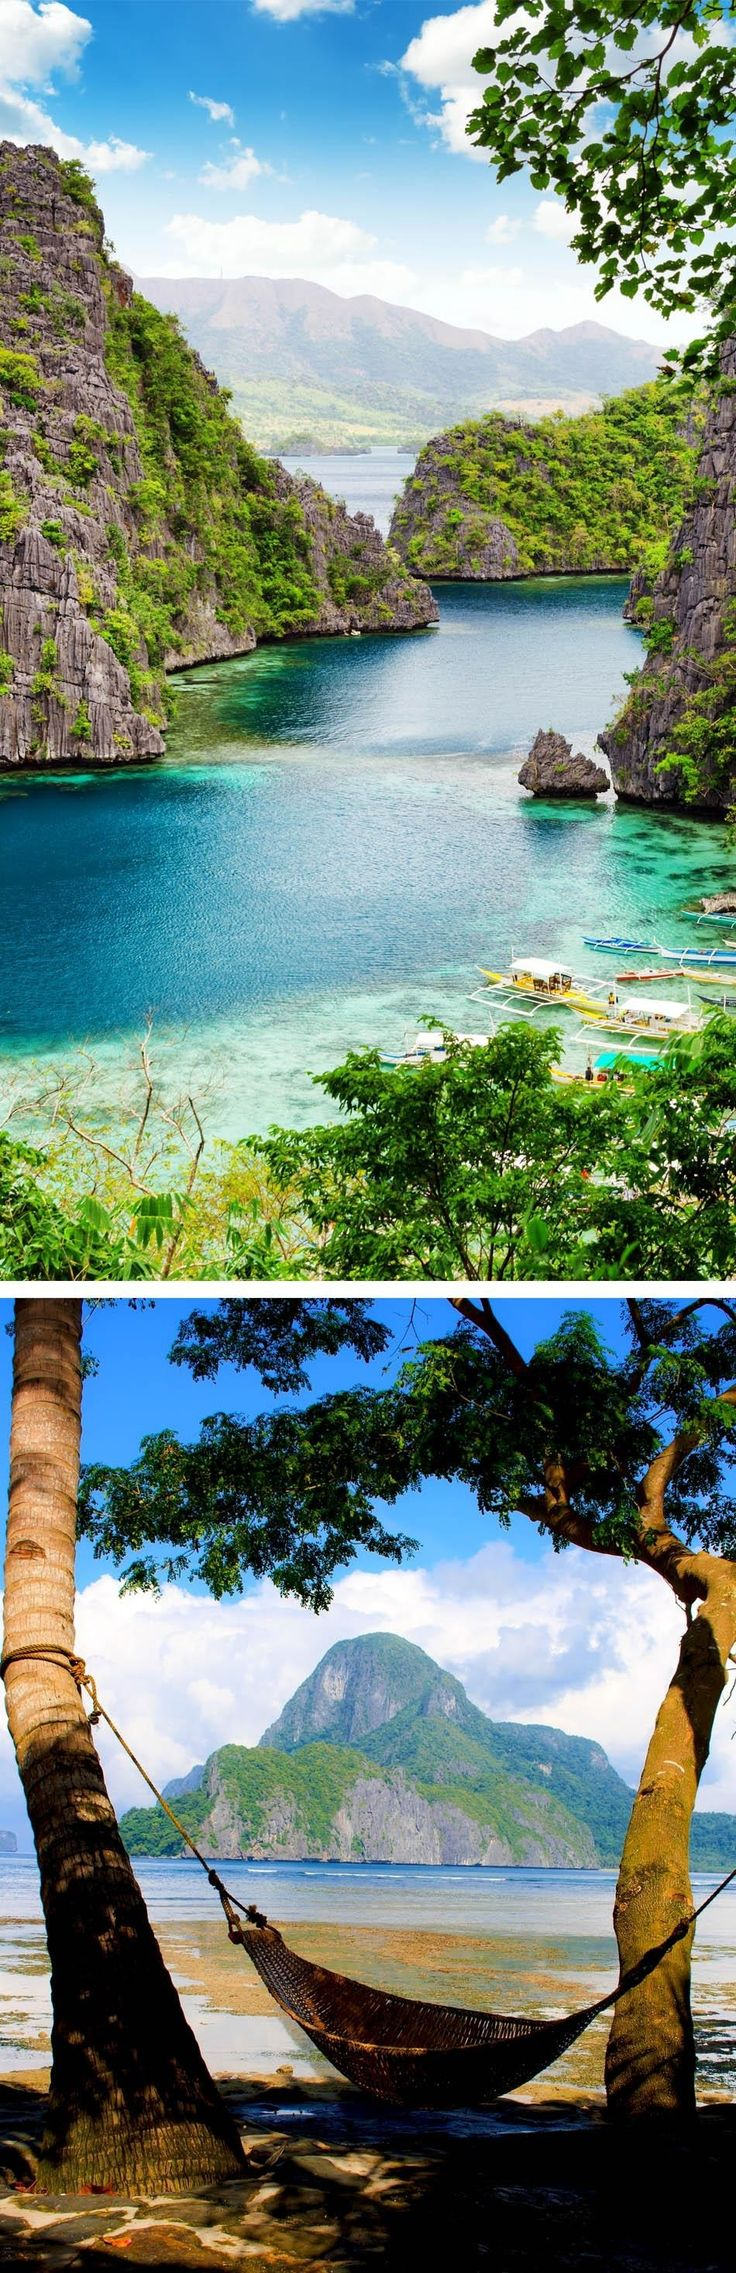 Palawan, Philippines | Top 10 most beautiful islands in the world